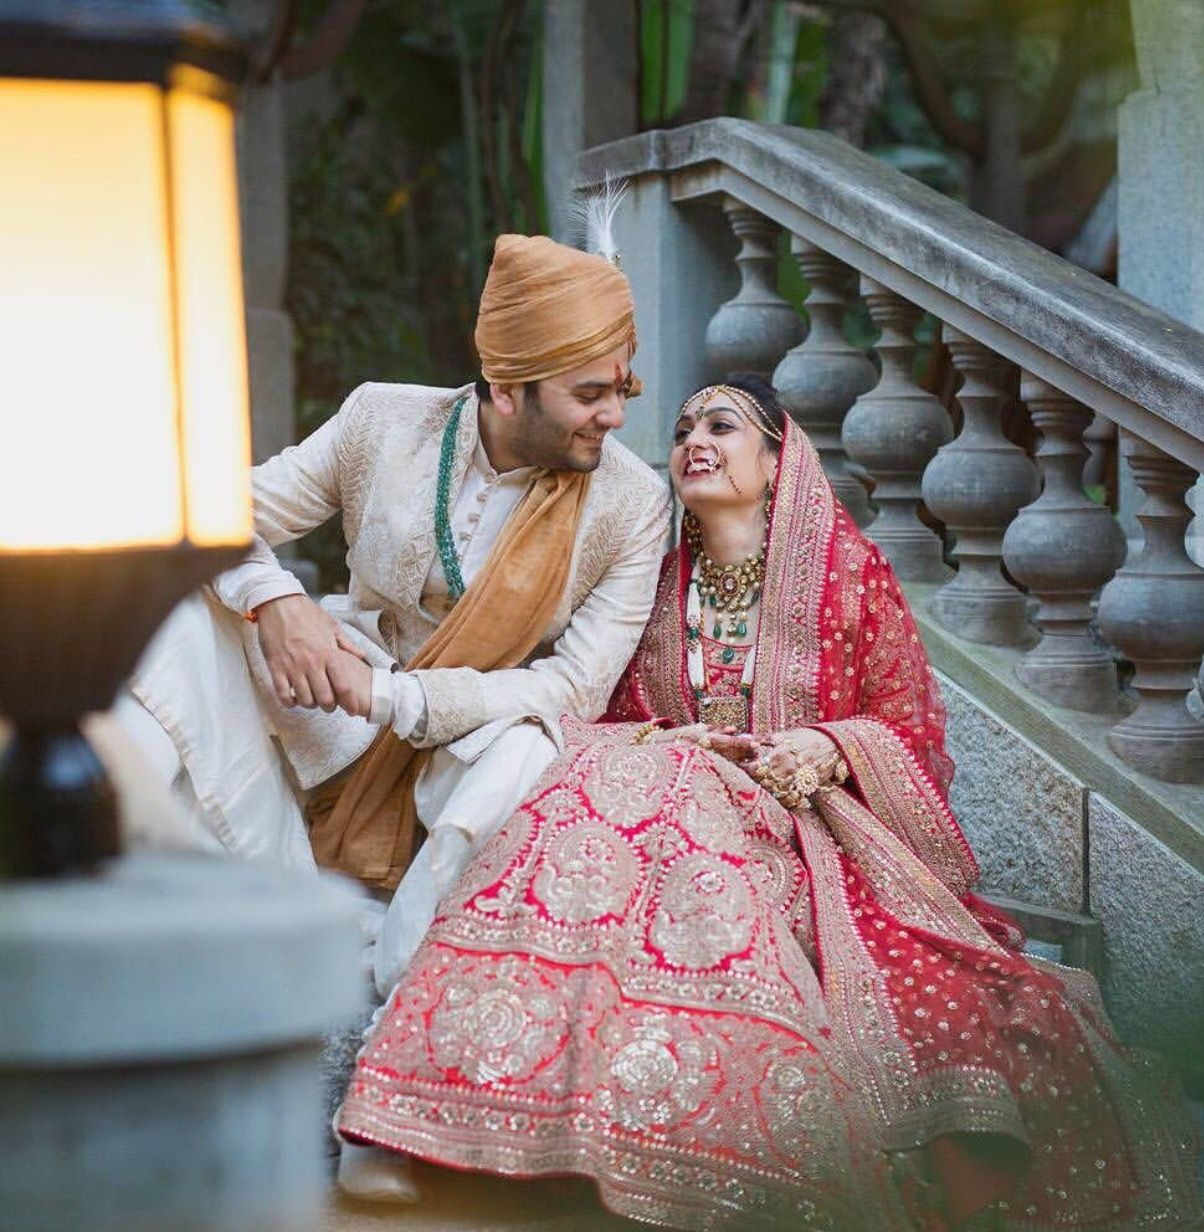 Kerala wedding reception dresses for the bride  Pin by Indira Srivastava on iNDIAN BRIDE  Pinterest  Indian clothes